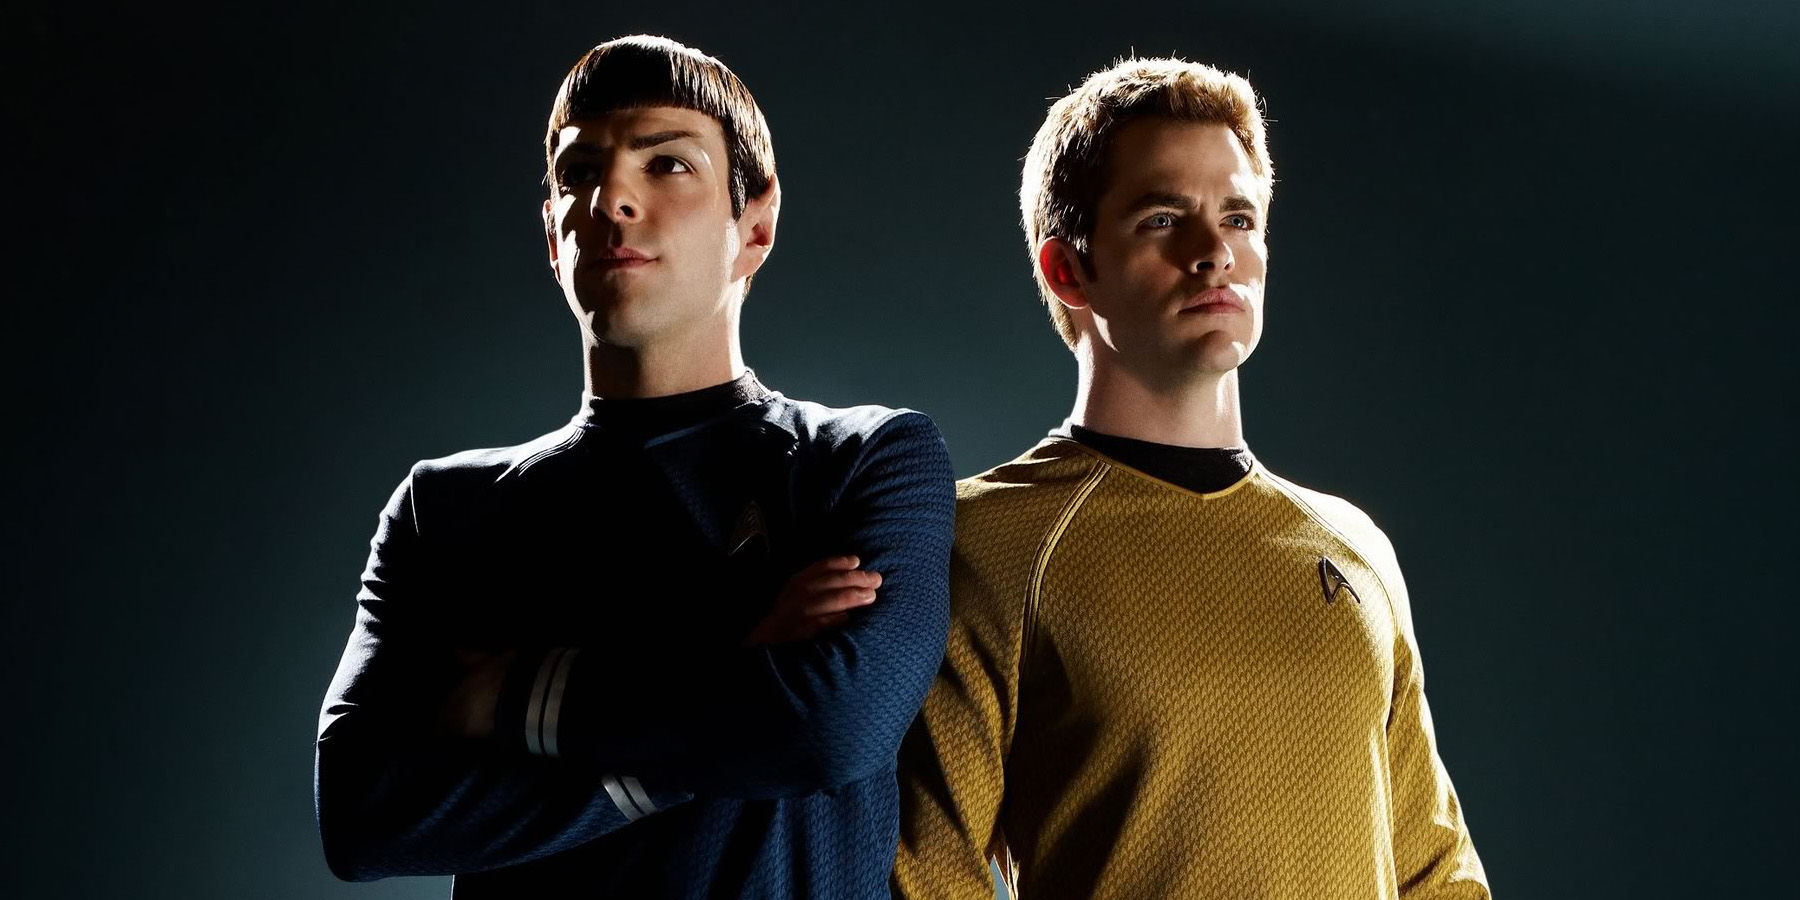 Spock-Zachary-Quinto-and-Captain-Kirk-Chris-Pine-Contract